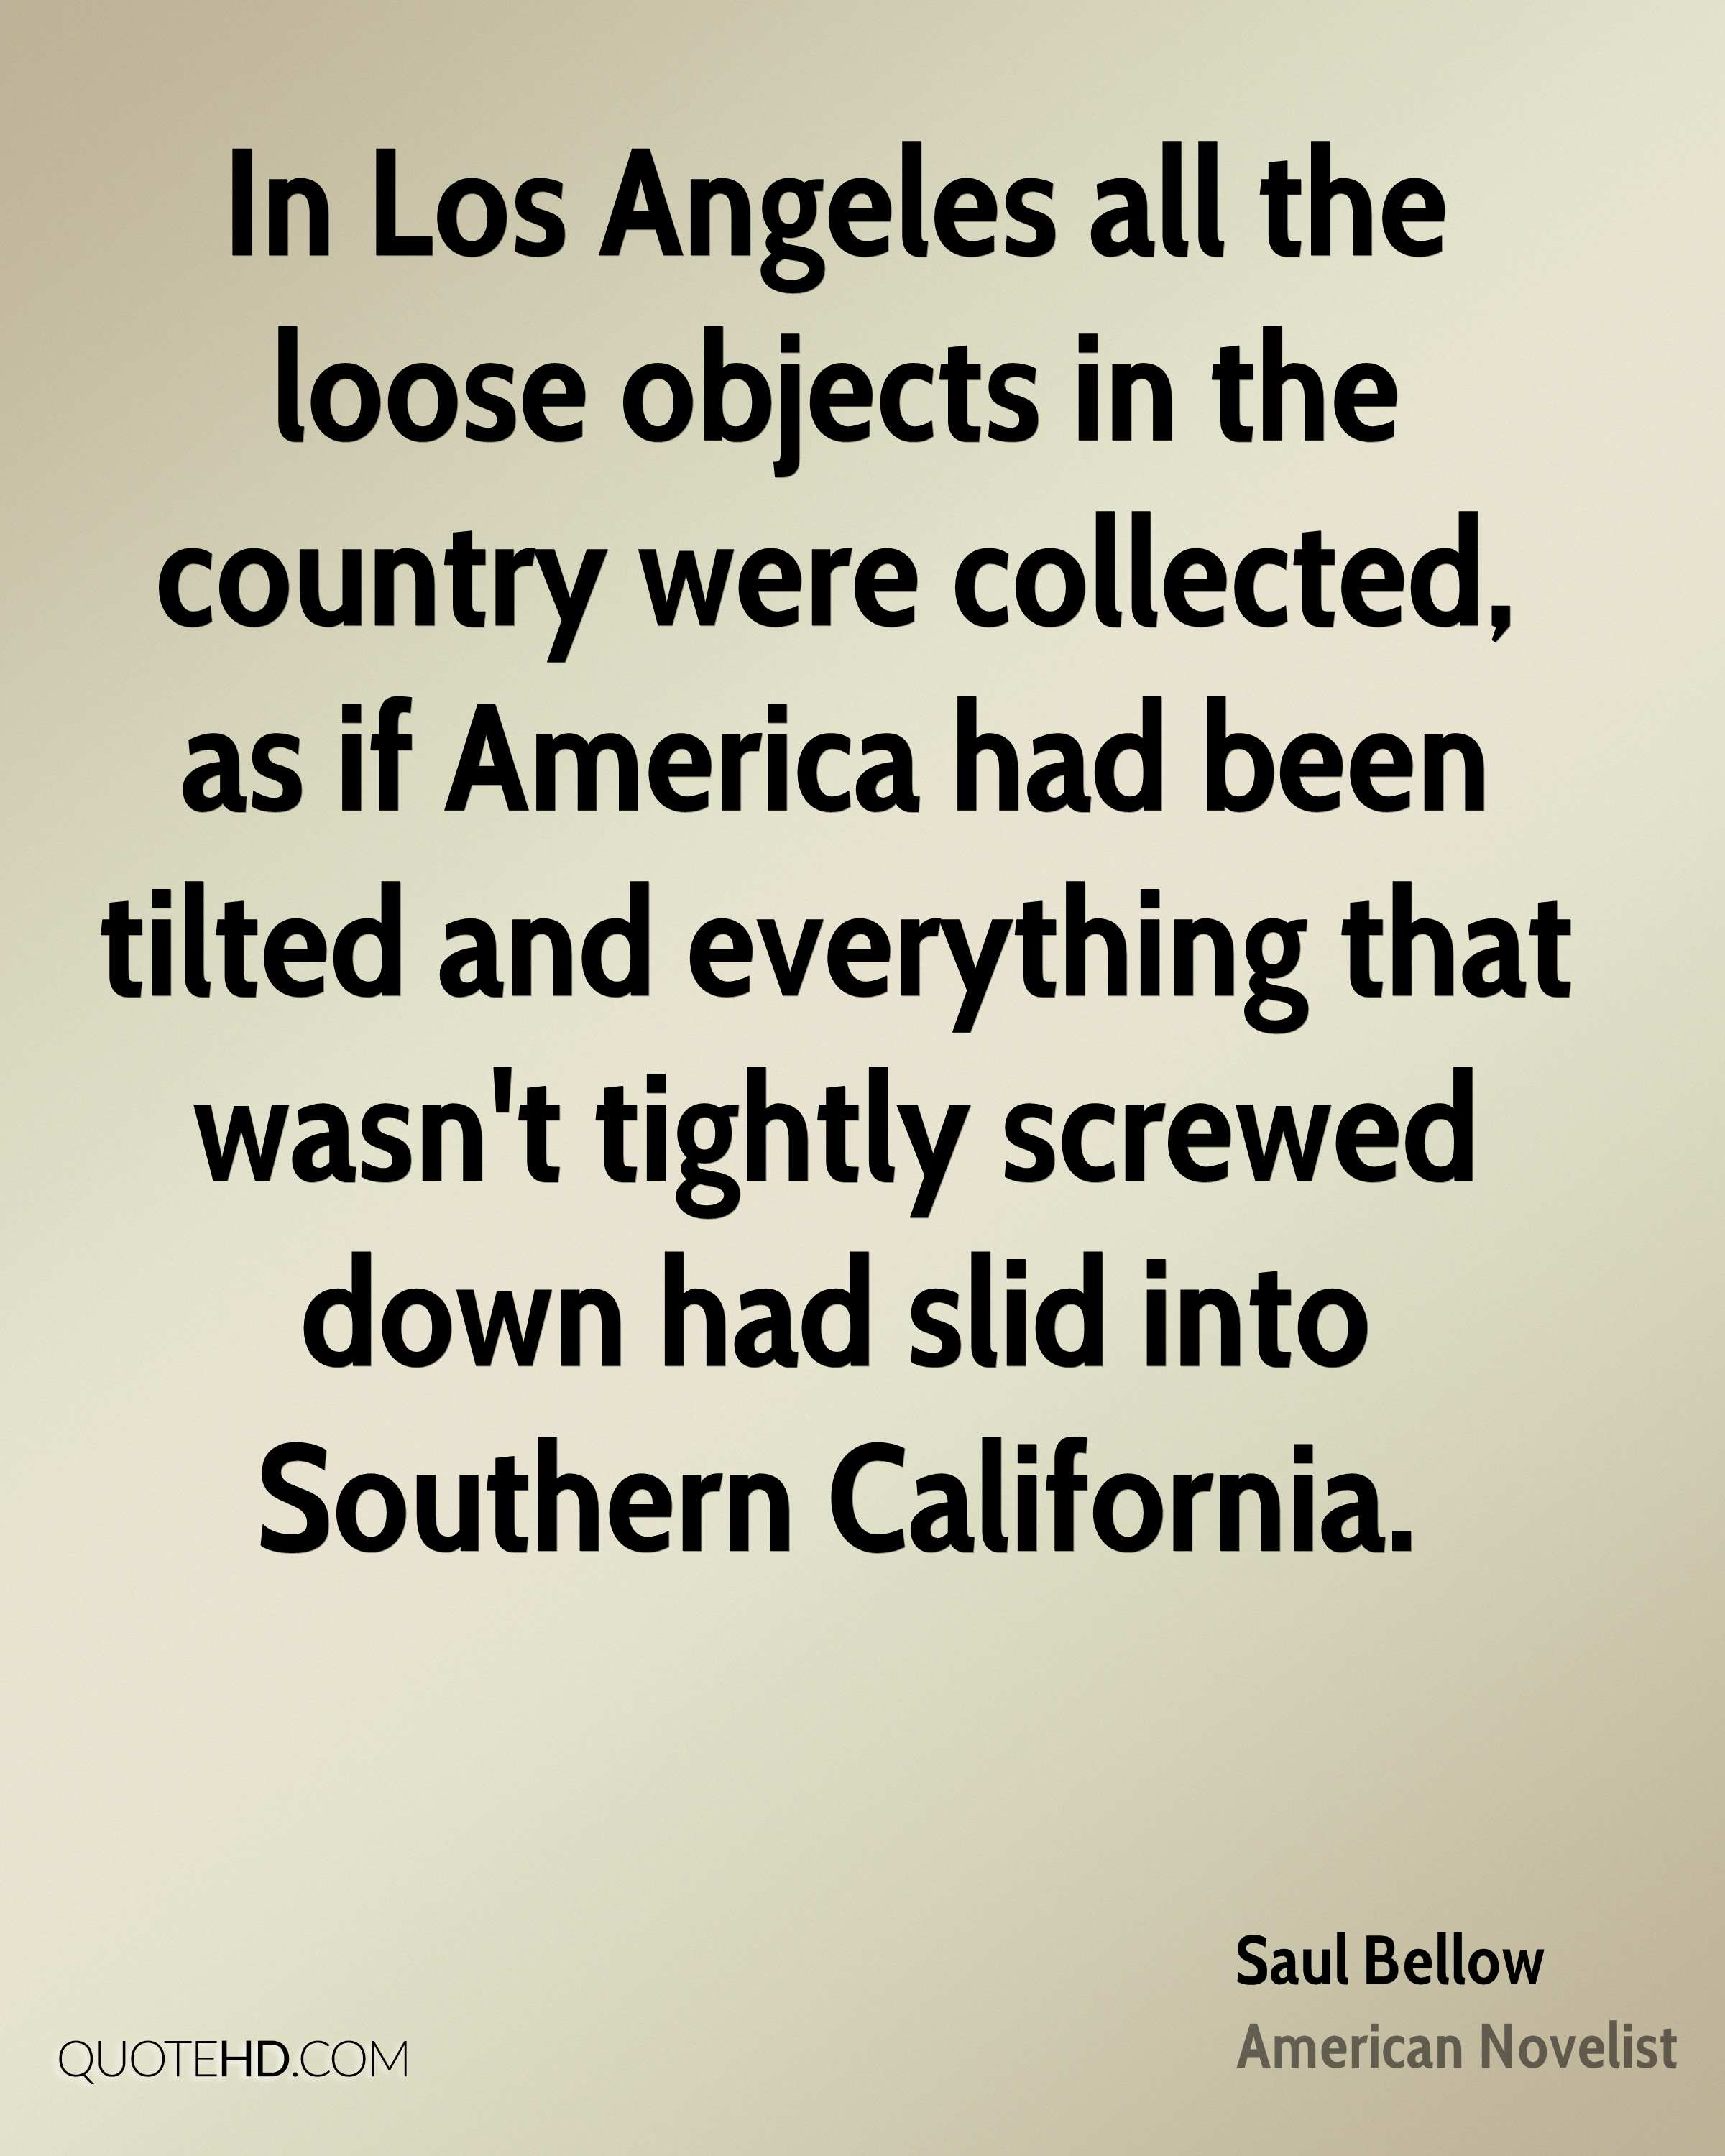 In Los Angeles all the loose objects in the country were collected, as if America had been tilted and everything that wasn't tightly screwed down had slid into Southern California.